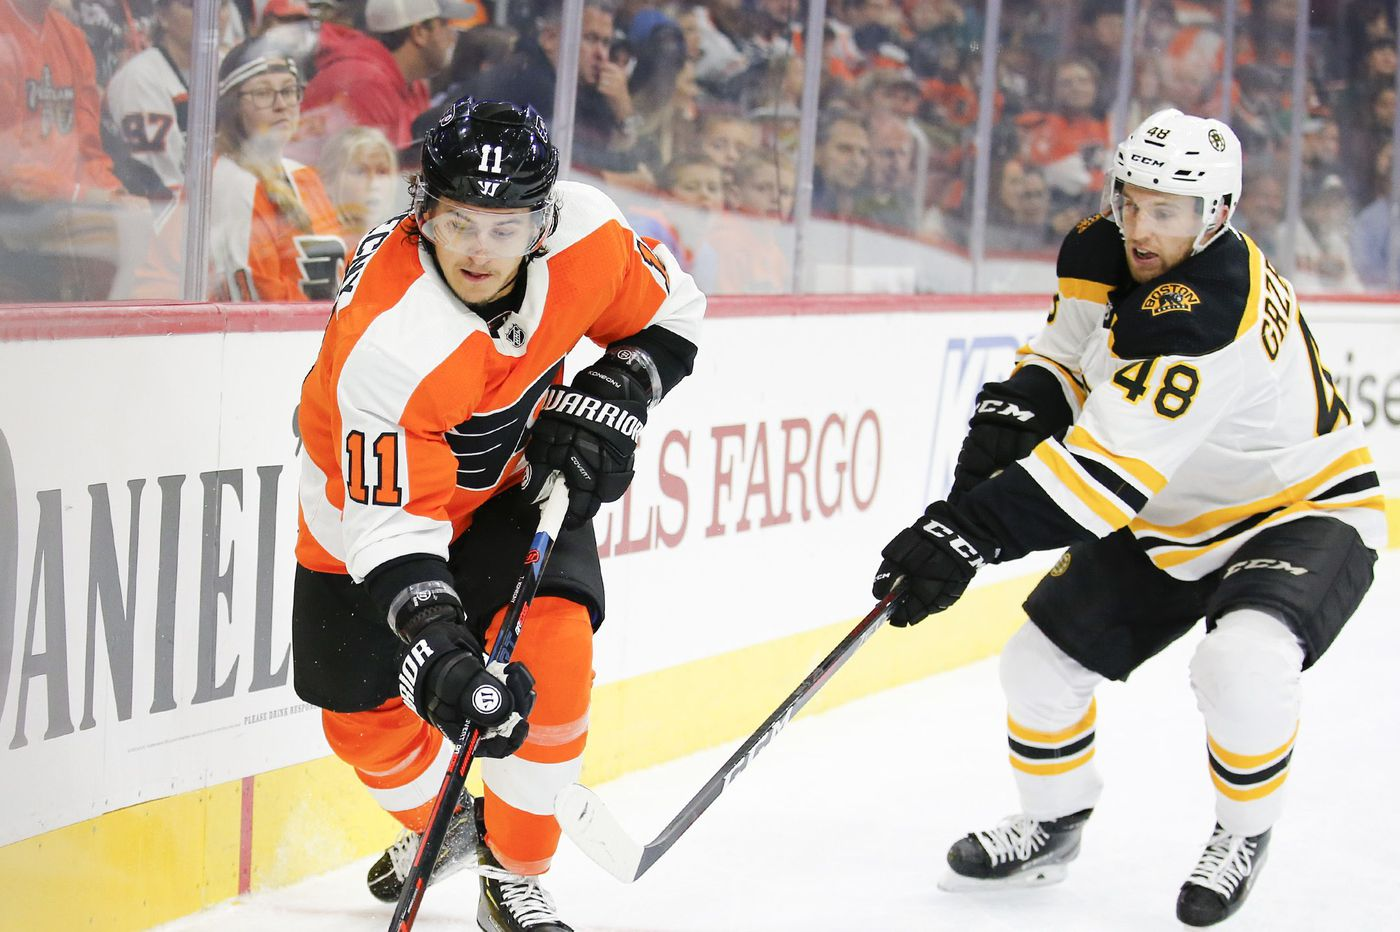 Travis Konecny leaves Flyers practice early, is latest worry in injury-filled start to season